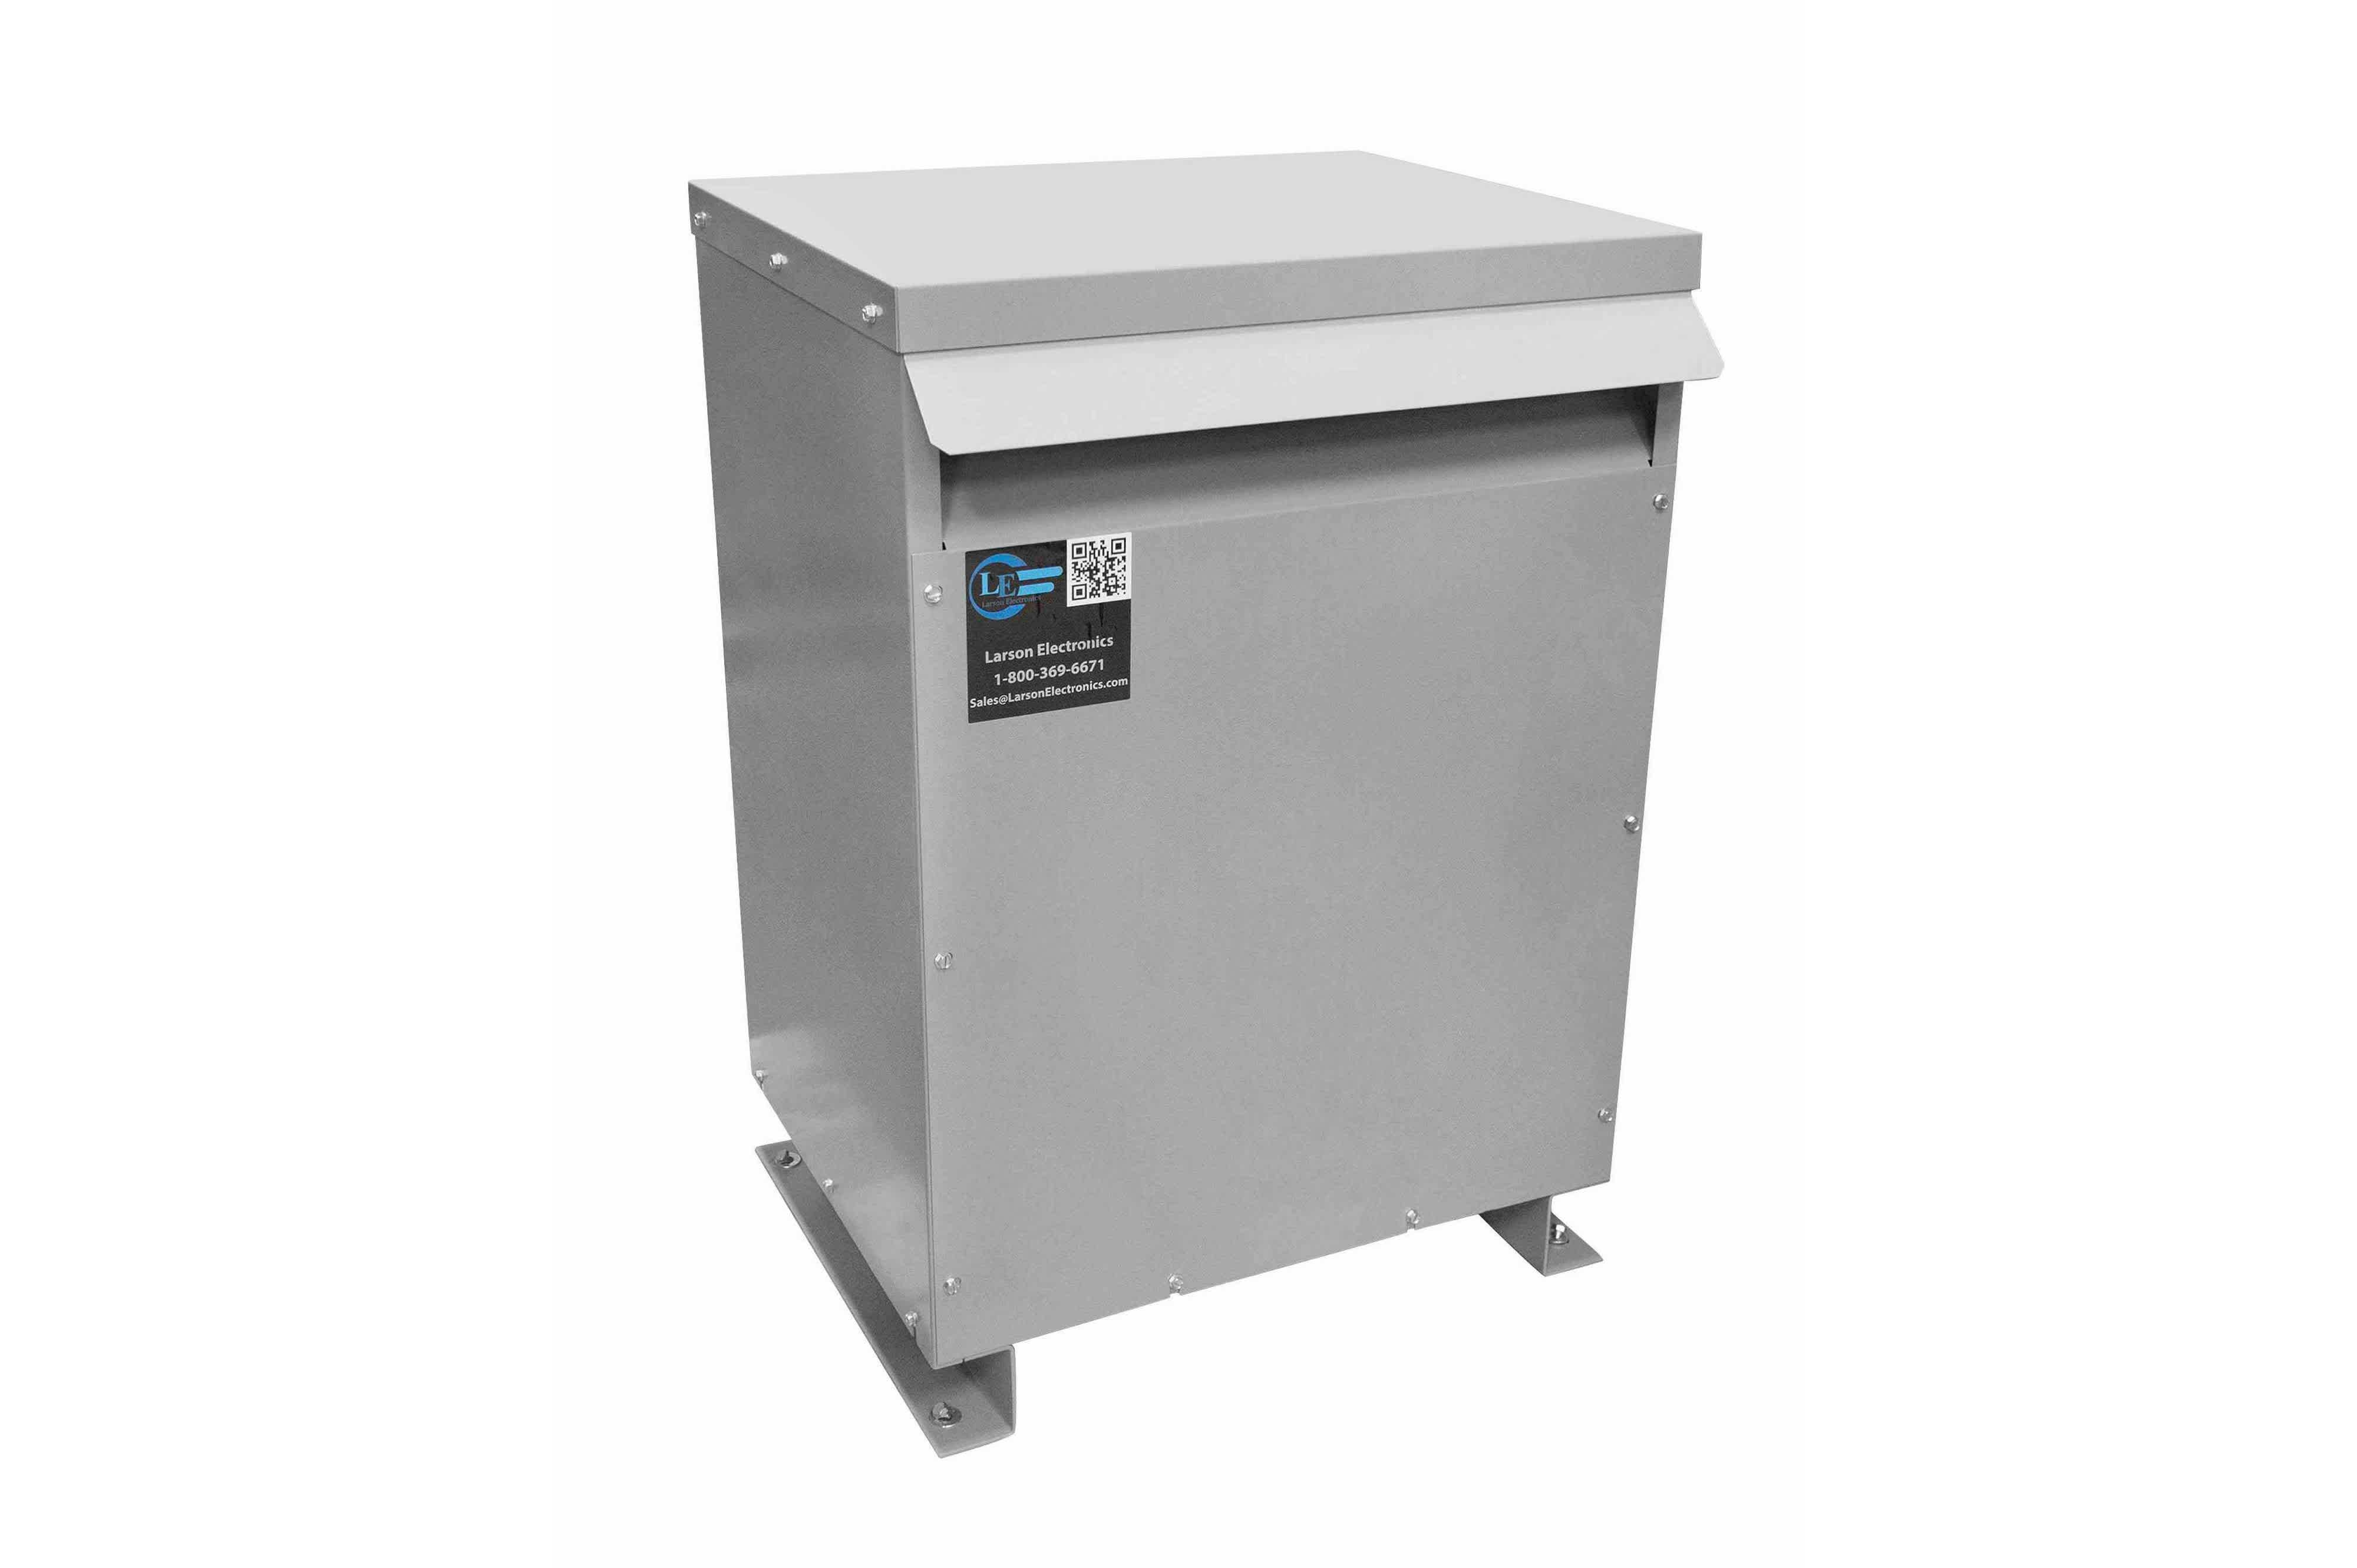 700 kVA 3PH DOE Transformer, 400V Delta Primary, 208Y/120 Wye-N Secondary, N3R, Ventilated, 60 Hz